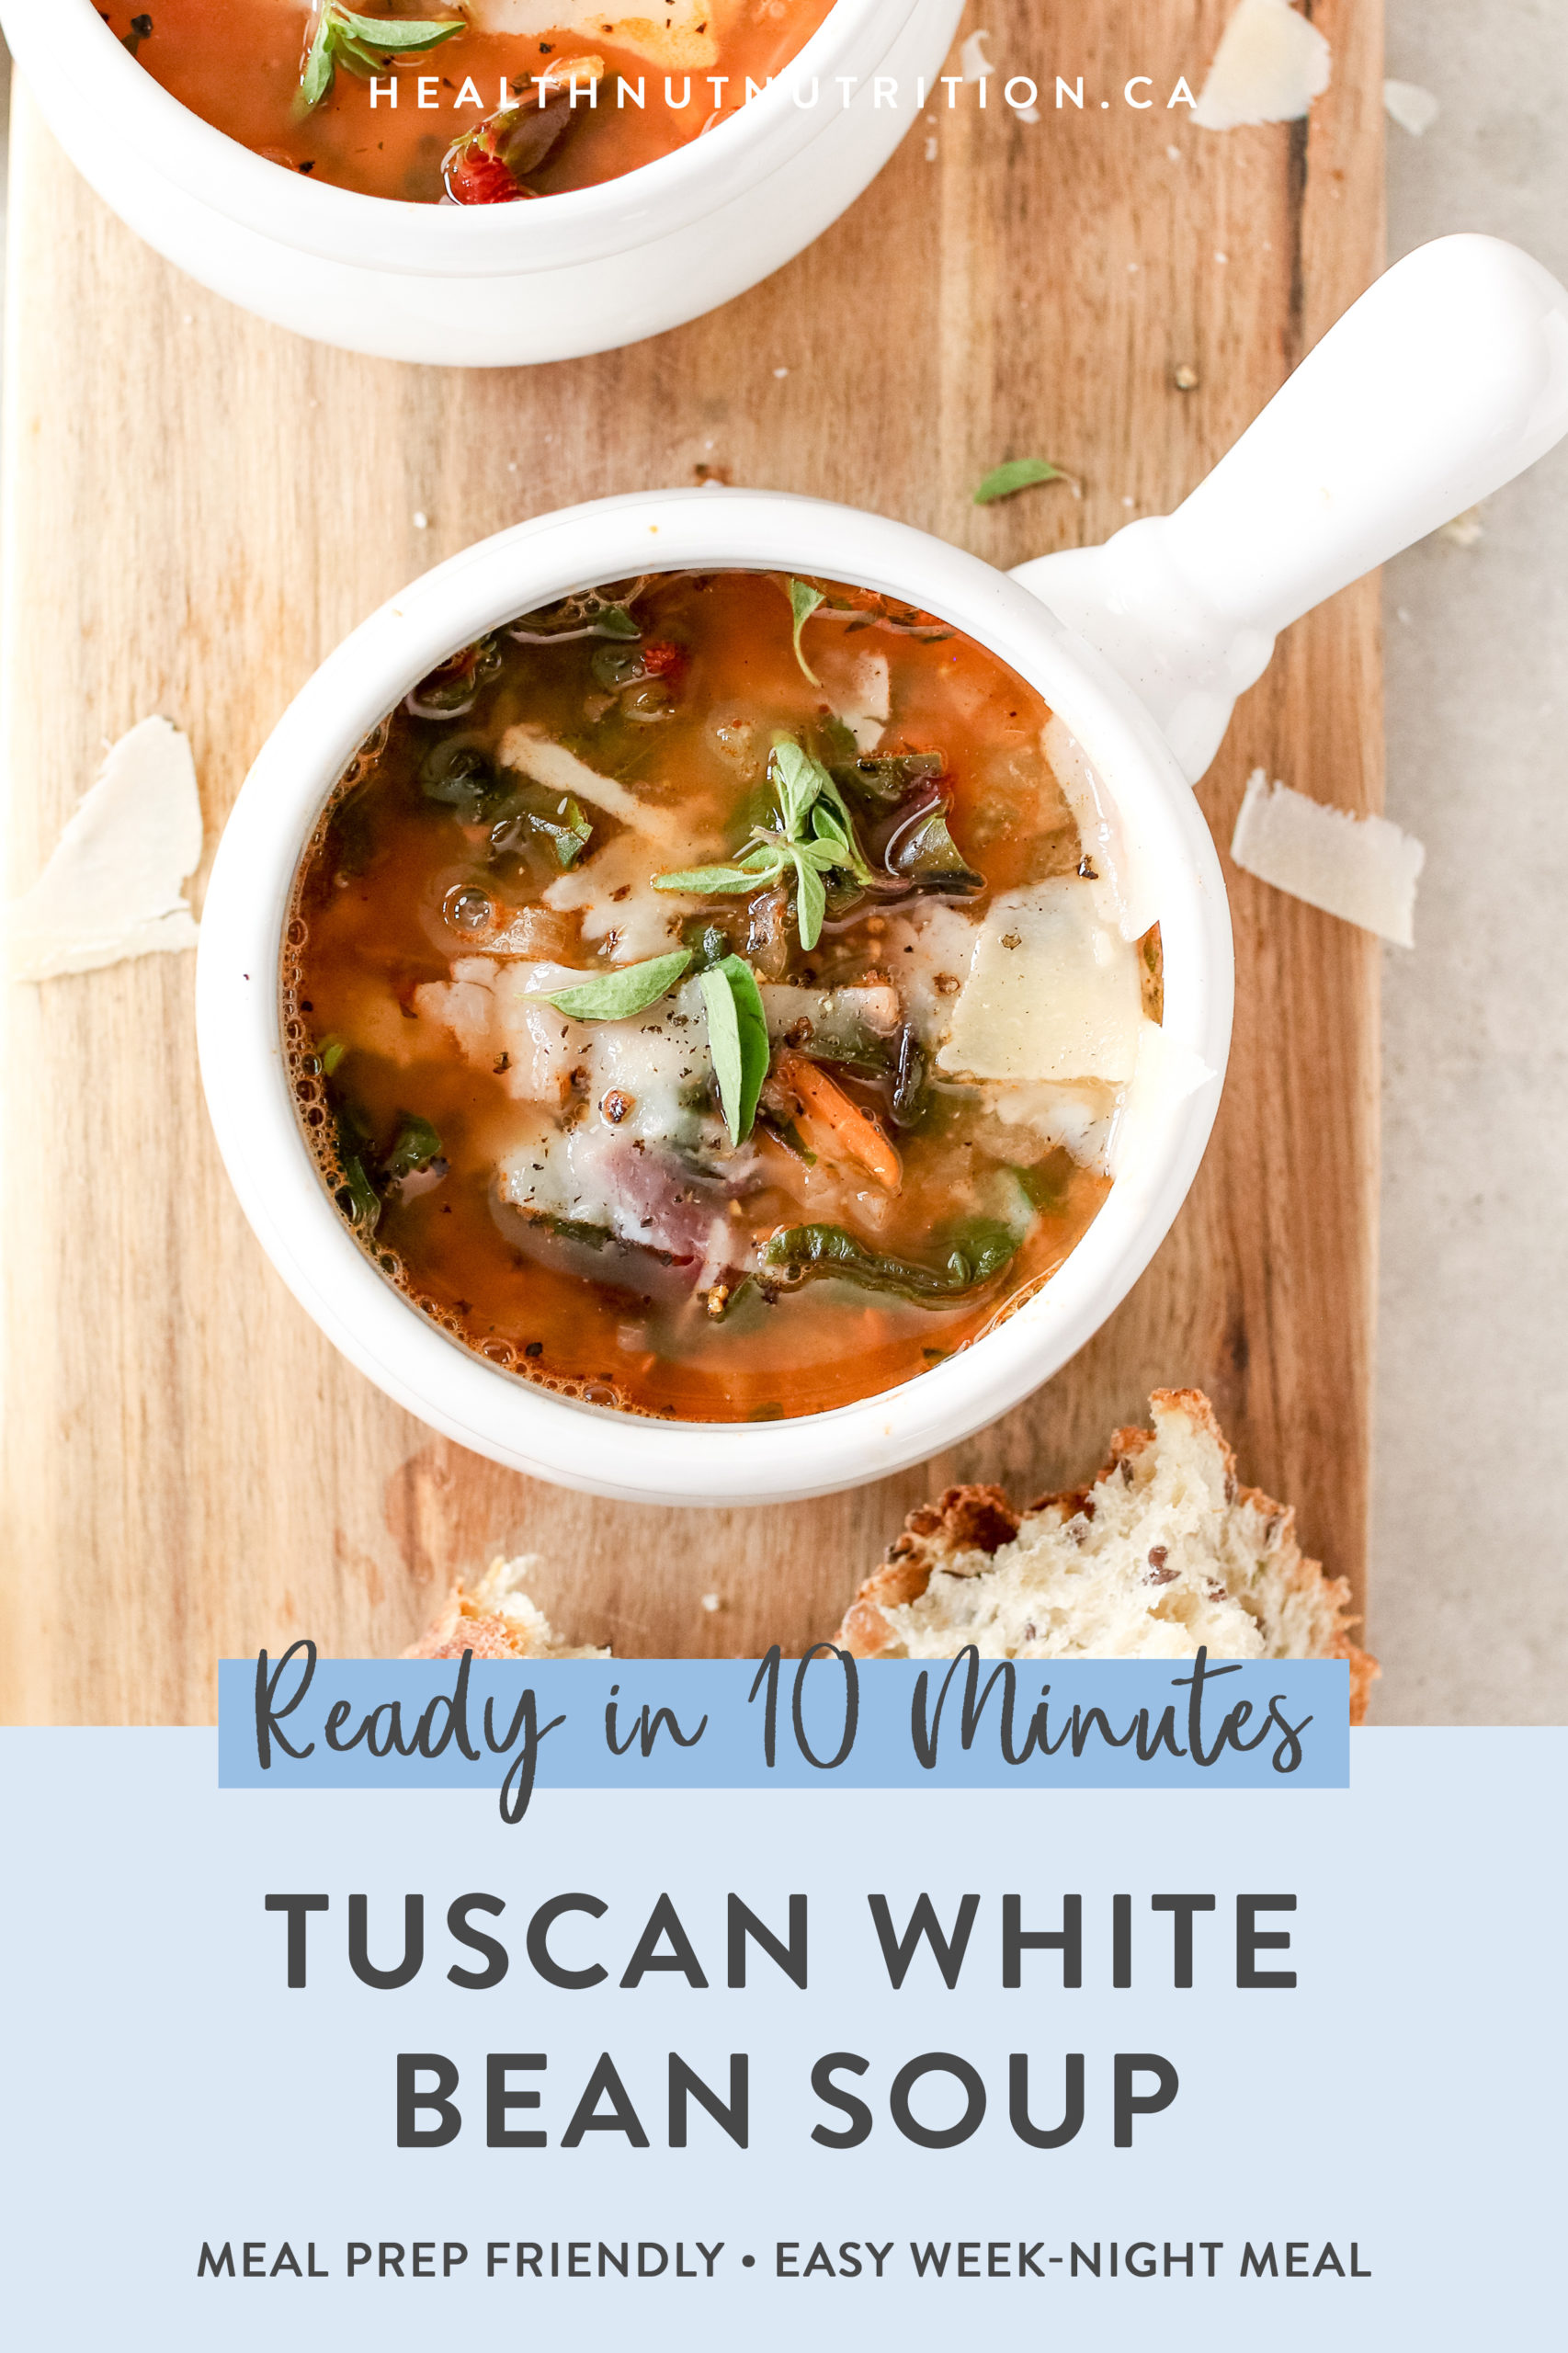 This Tuscan White Bean Soup is hearty and so comforting. Full of white beans, swiss chard, and fresh herbs. Super simple to make and ready in 10 minutes!